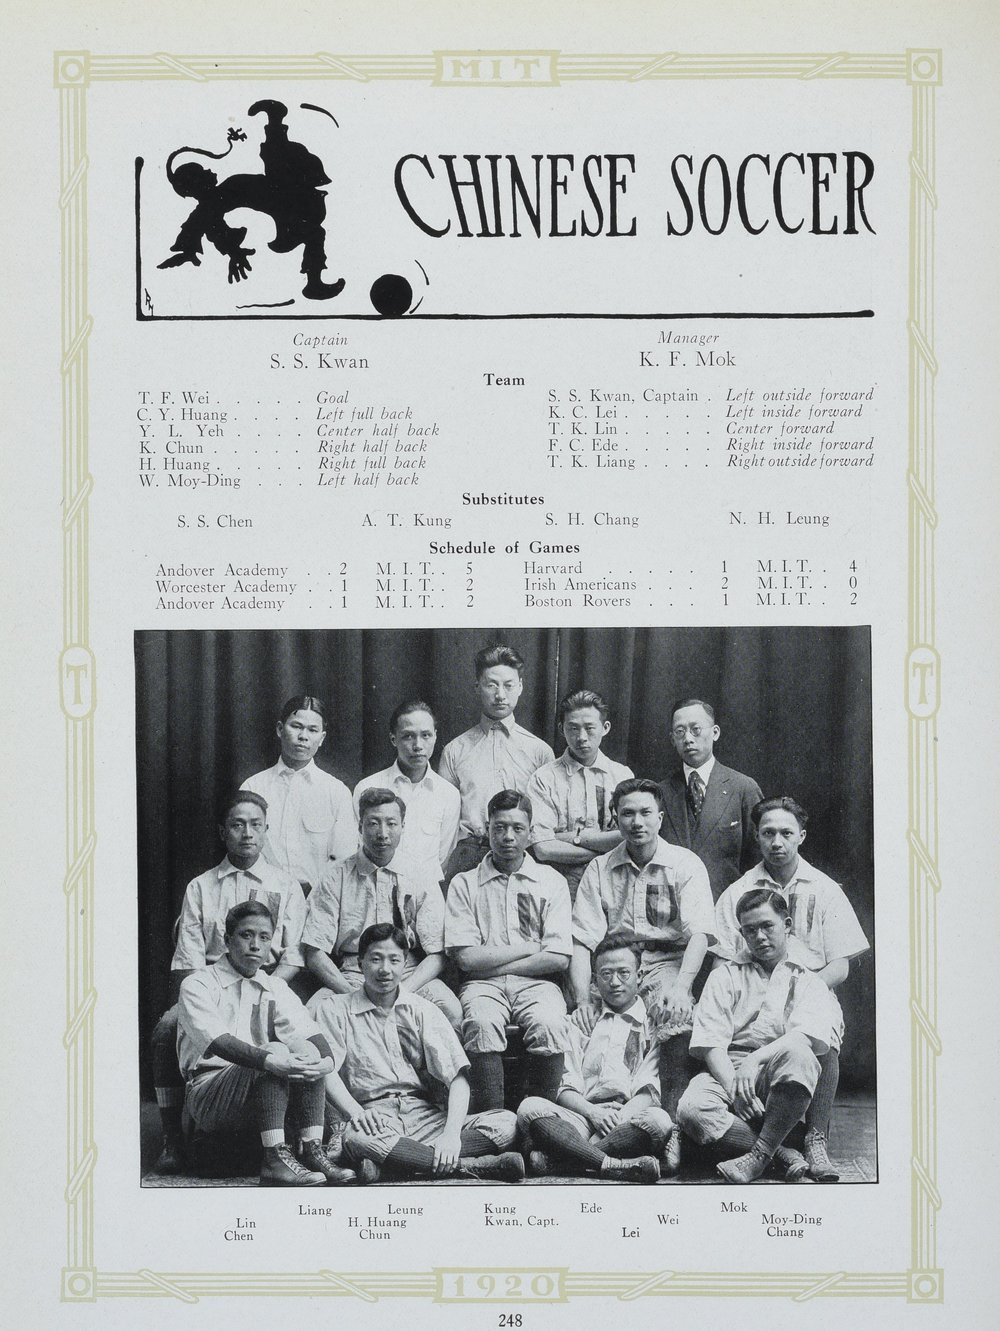 Chinese Soccer Team from MIT  Technique  1920. Image courtesy MIT Archives and Special Collections.